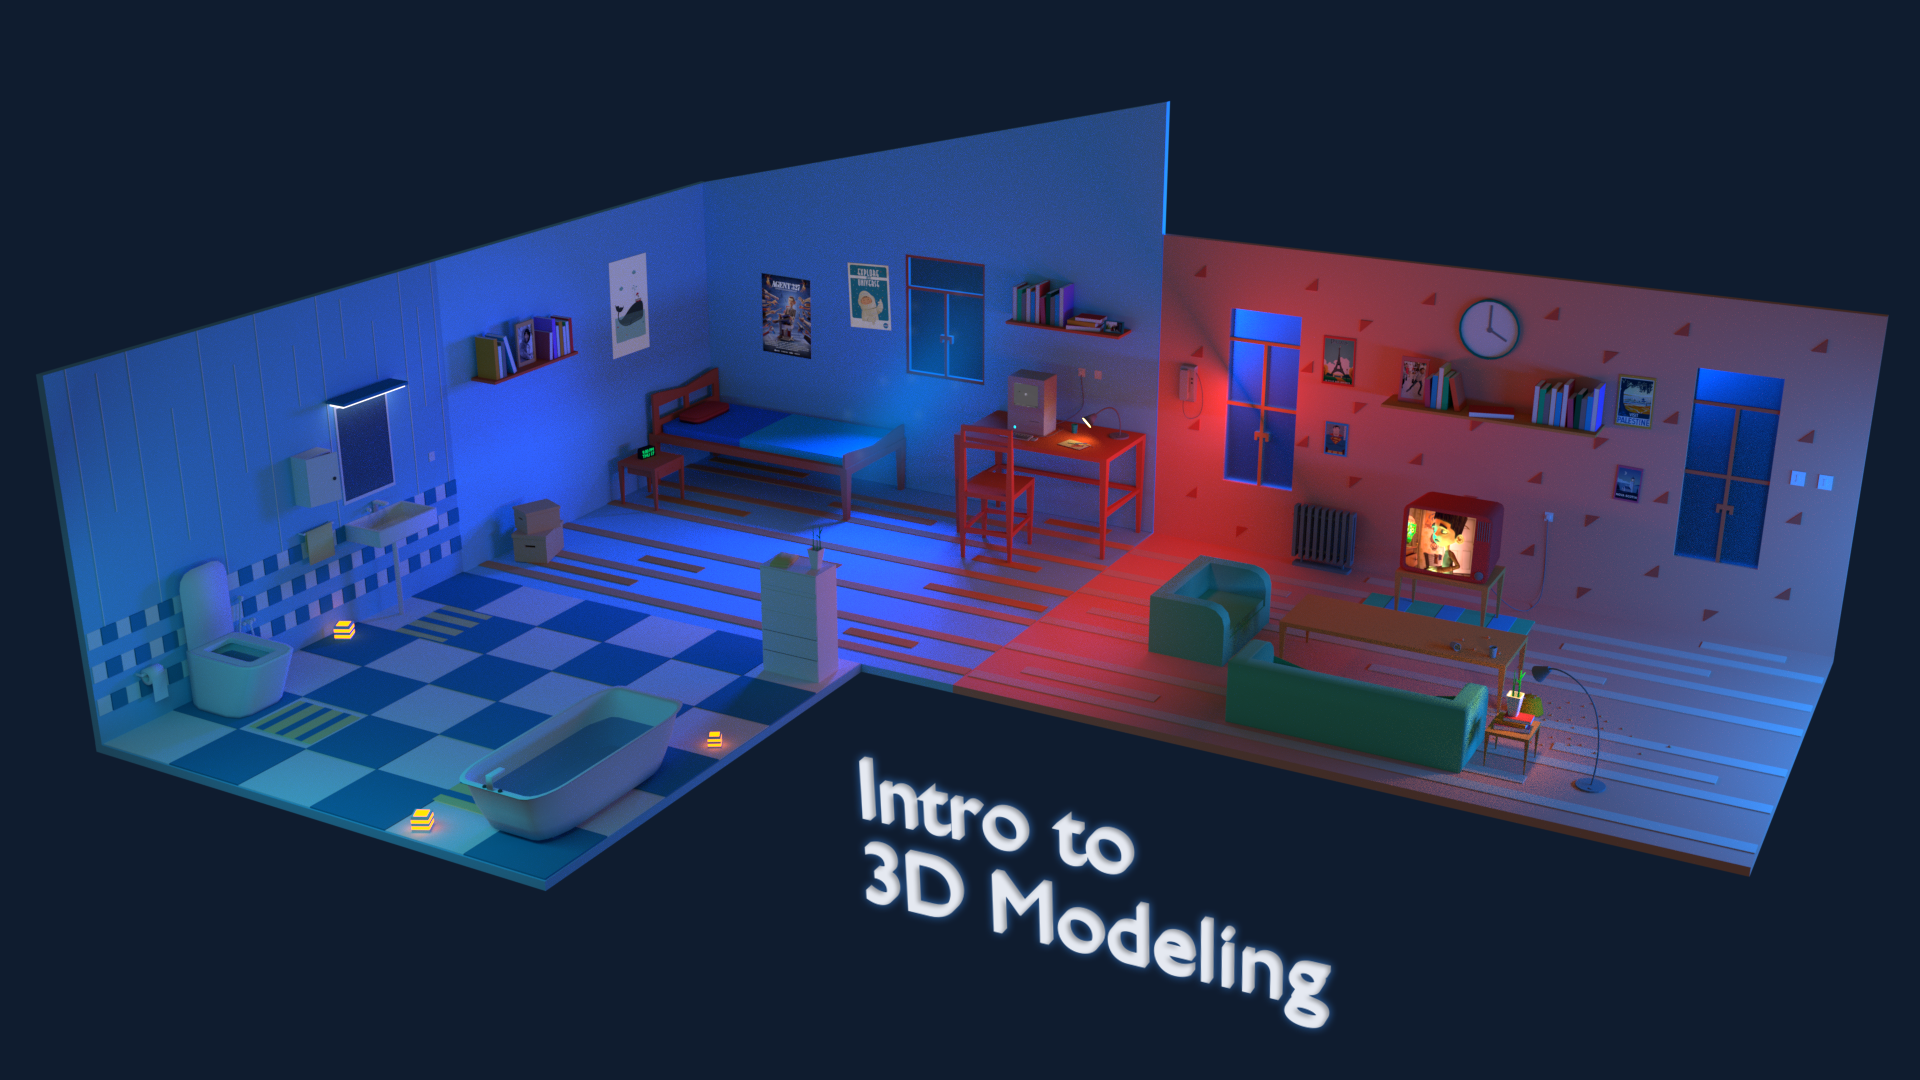 I need 15 People For This Blender Course! - General